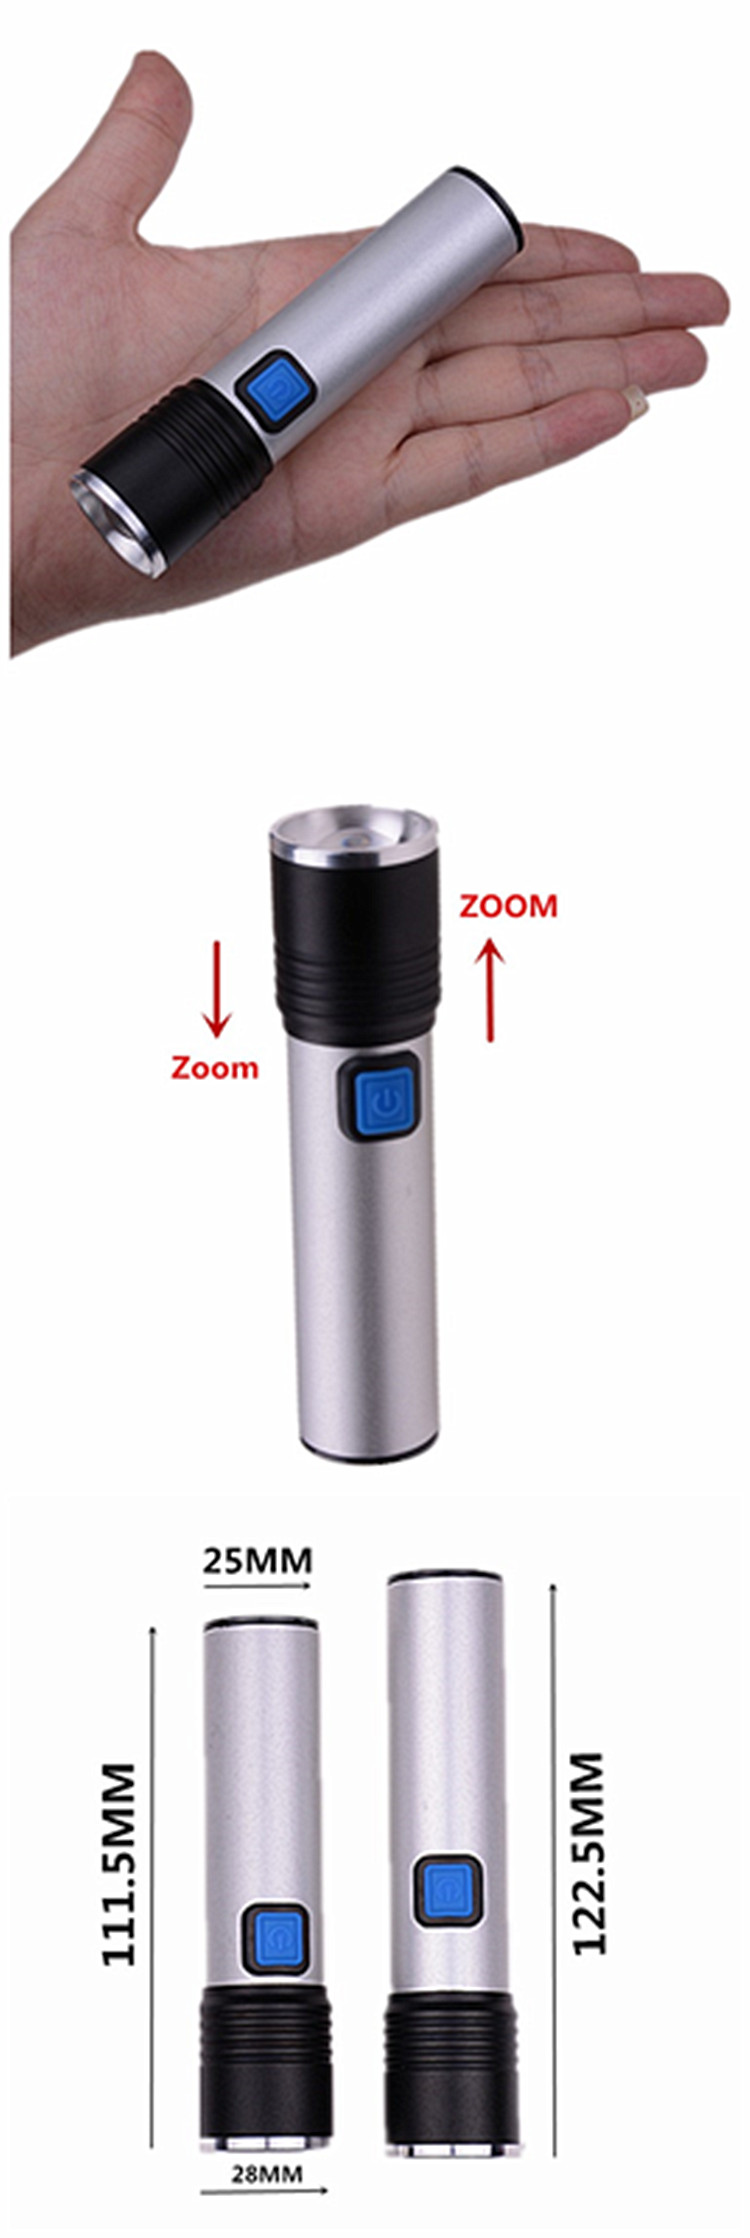 Portable Q5 5W cheap Waterproof Mini Torch Built in battery zoomable USB Rechargeable Mini FlashlightS